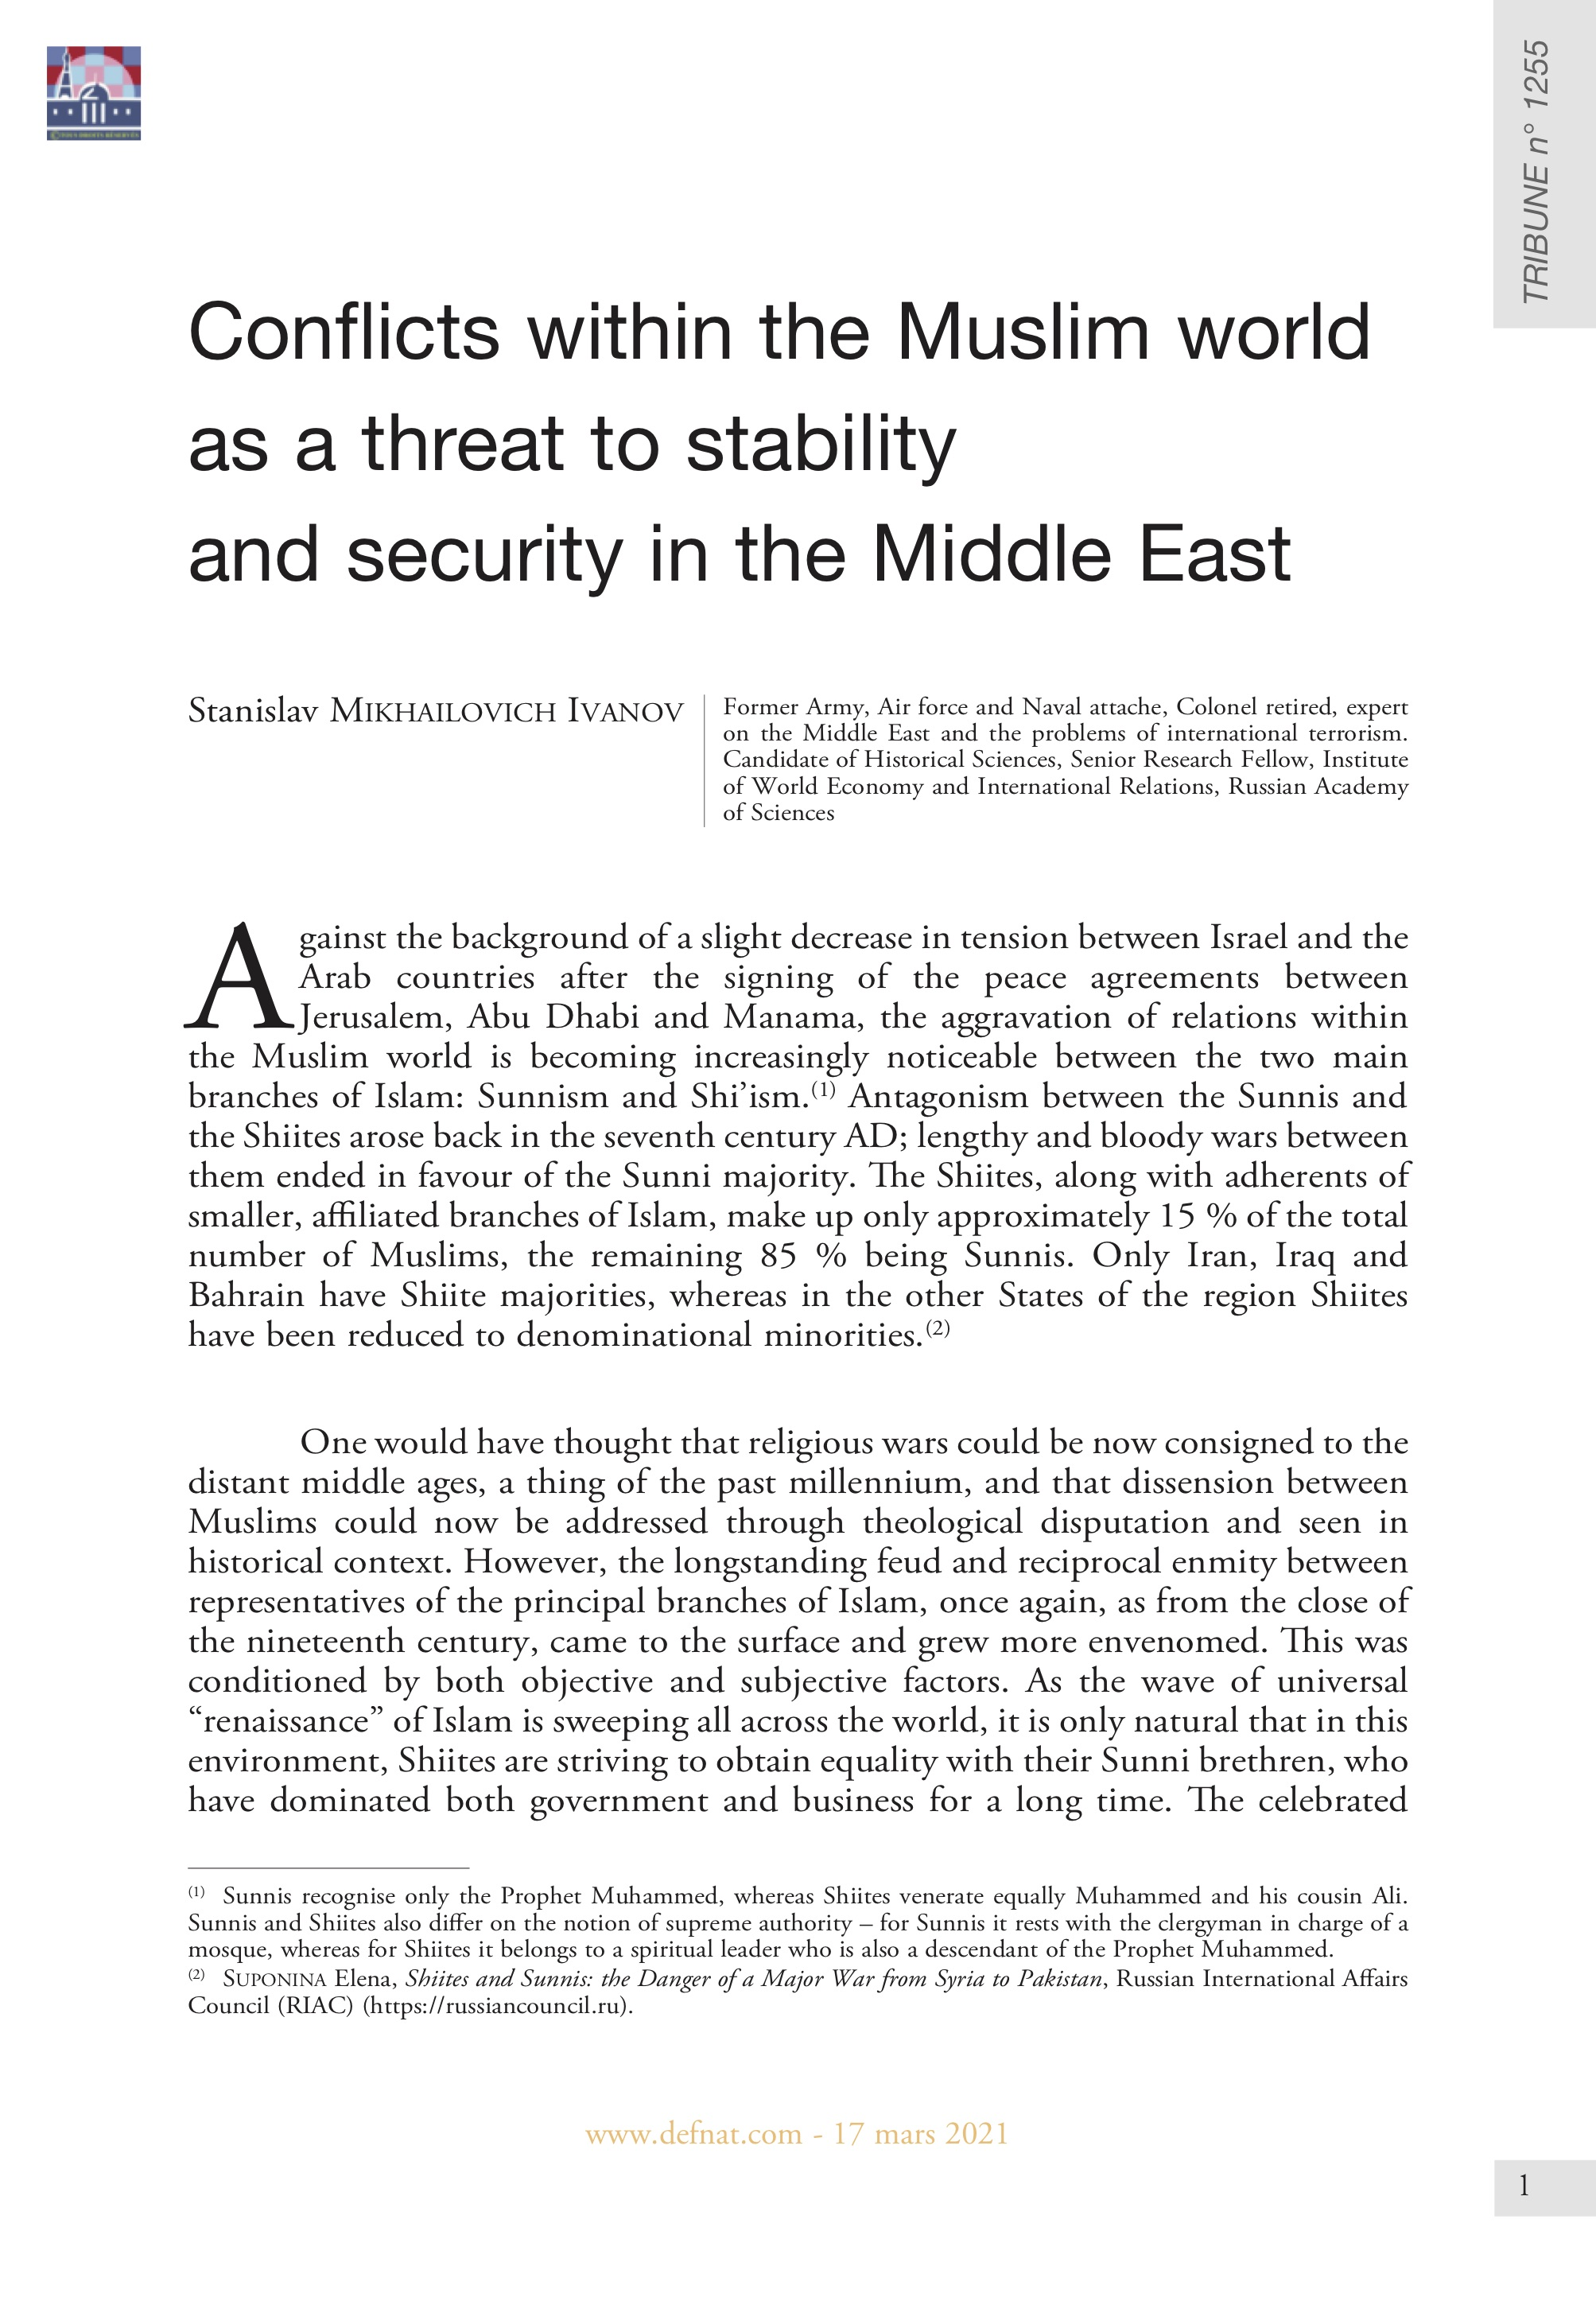 Conflicts within the Muslim World as a Threat to Stability and Security in the Middle East (T 1255)